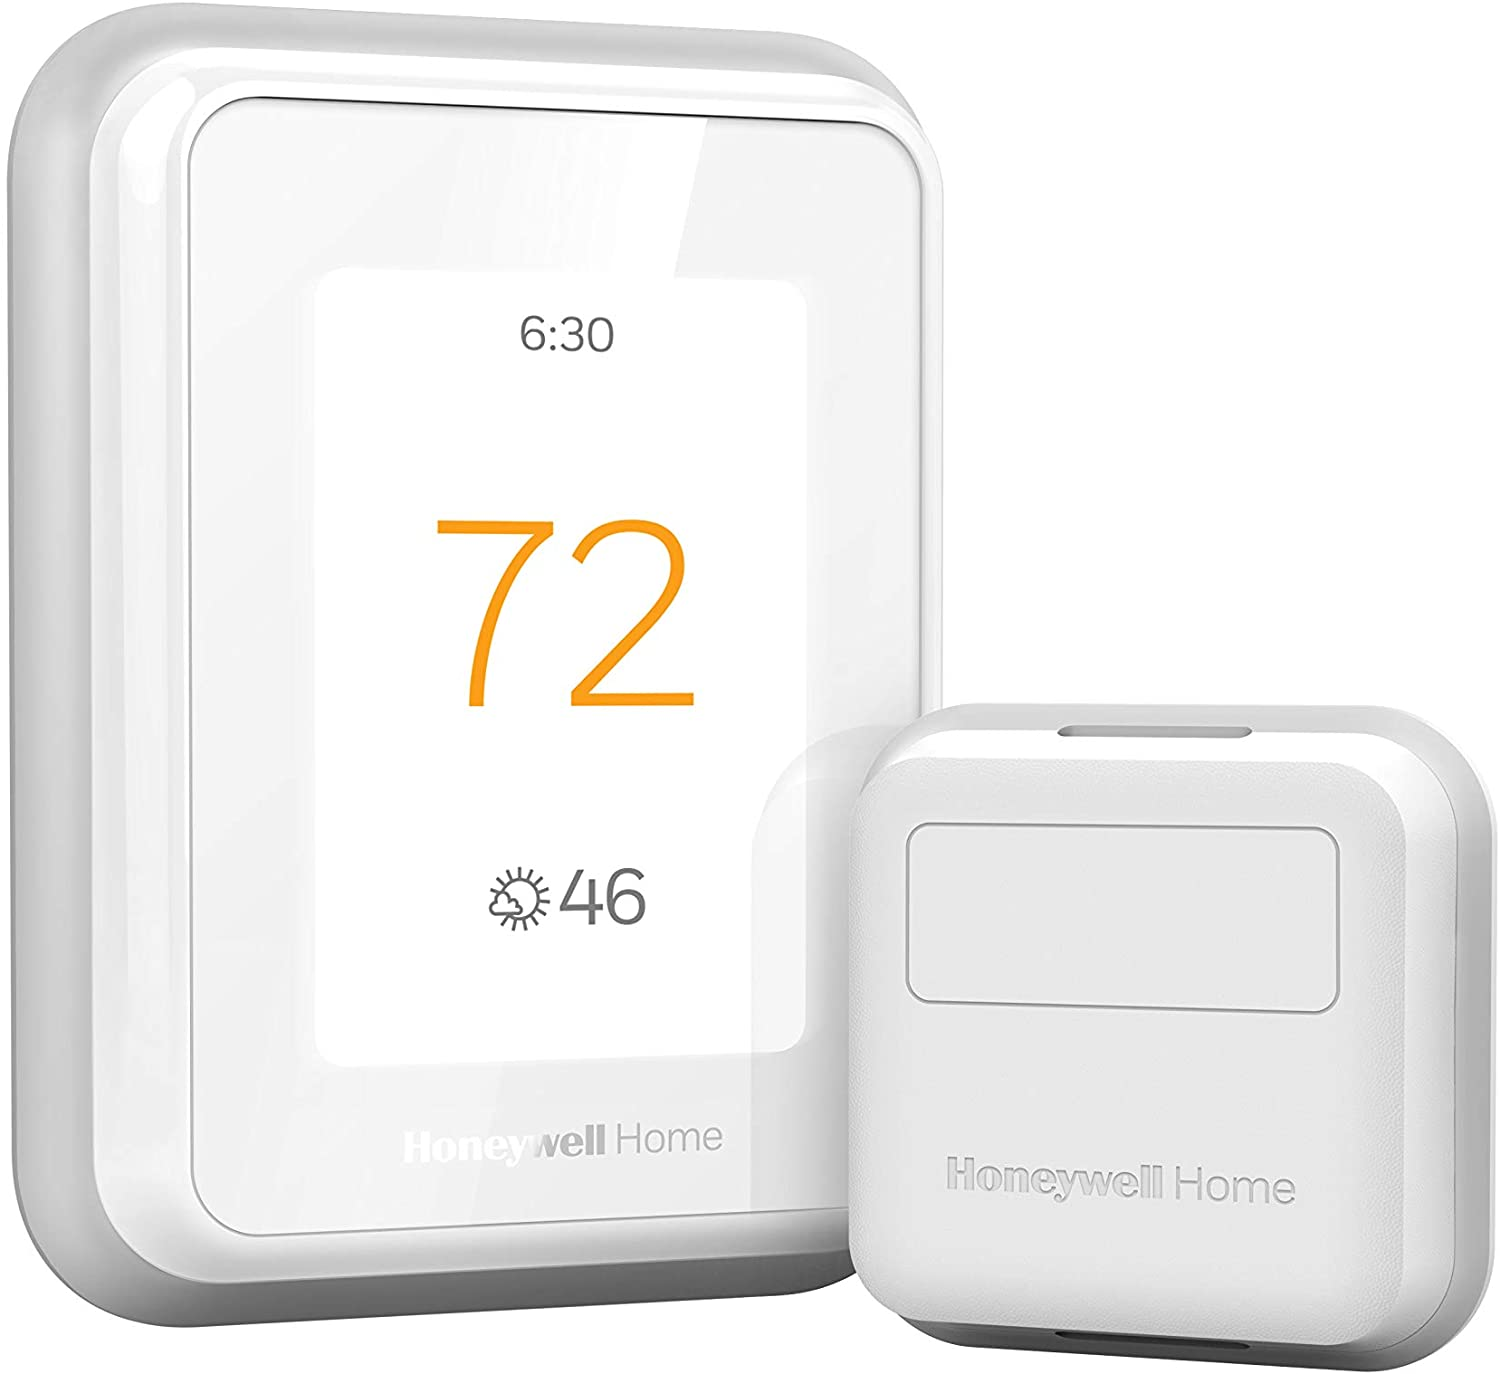 Honeywell Home RCHT9610WFSW2003 T9